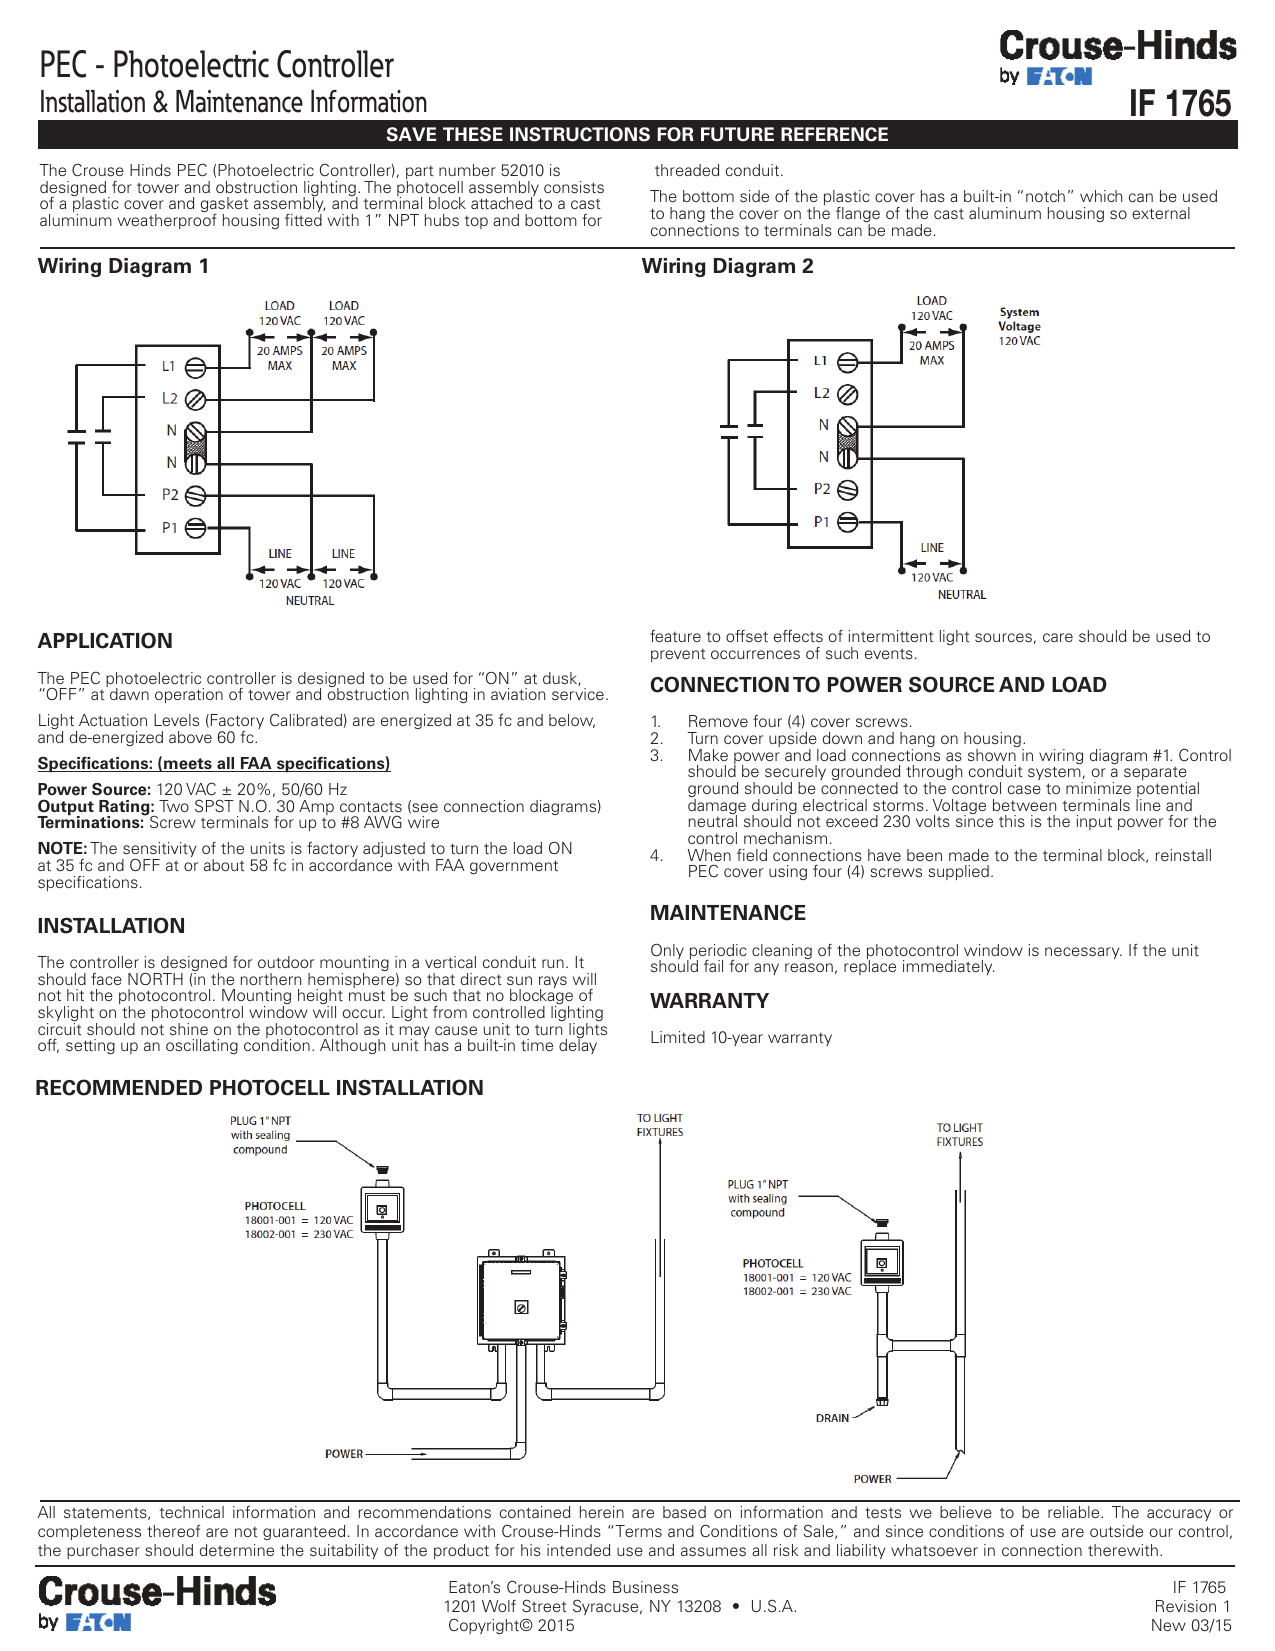 Photocell Lighting Control Wiring Diagram